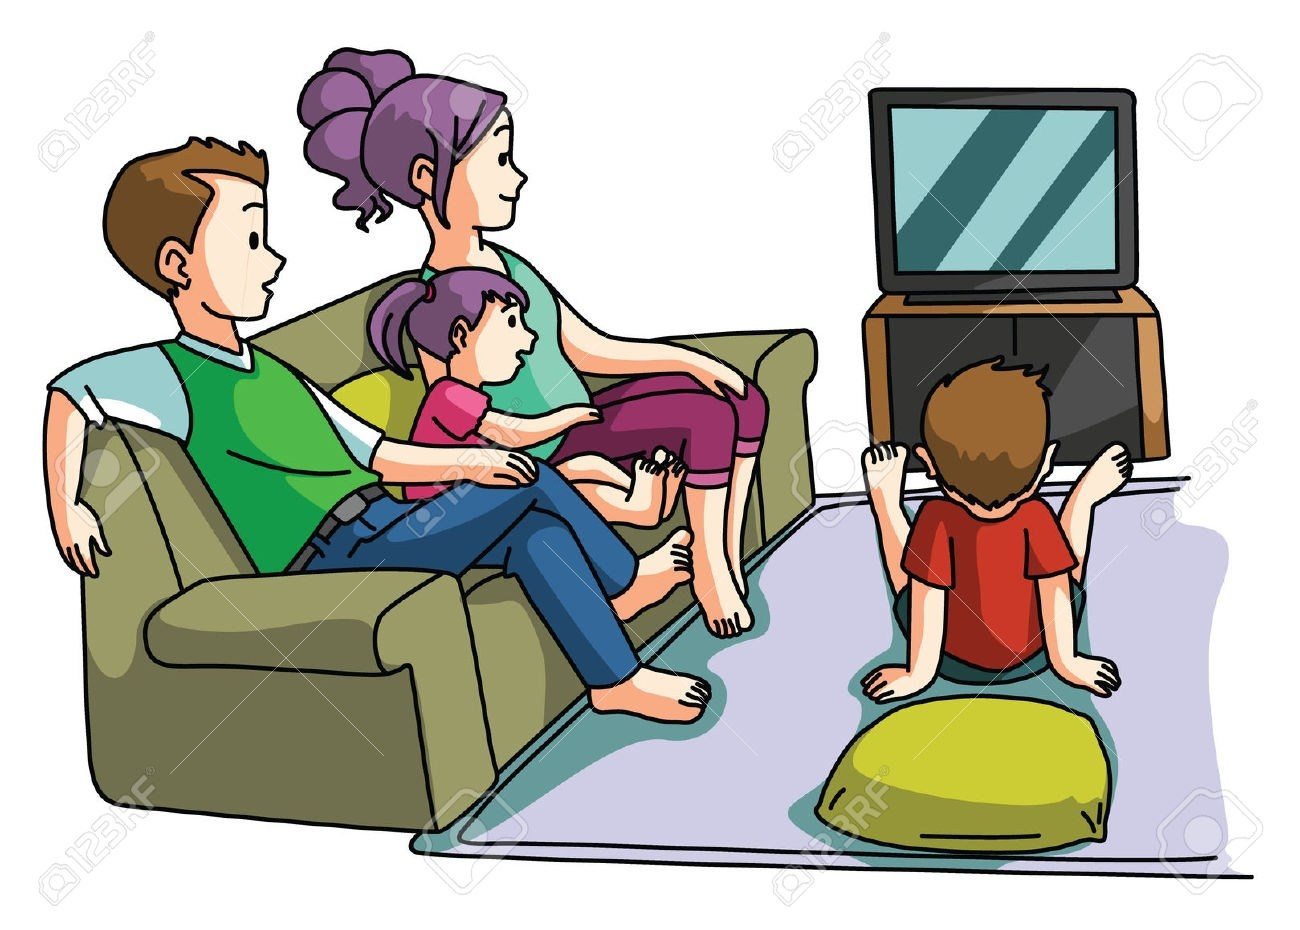 Family watching movie clipart 5 » Clipart Portal.